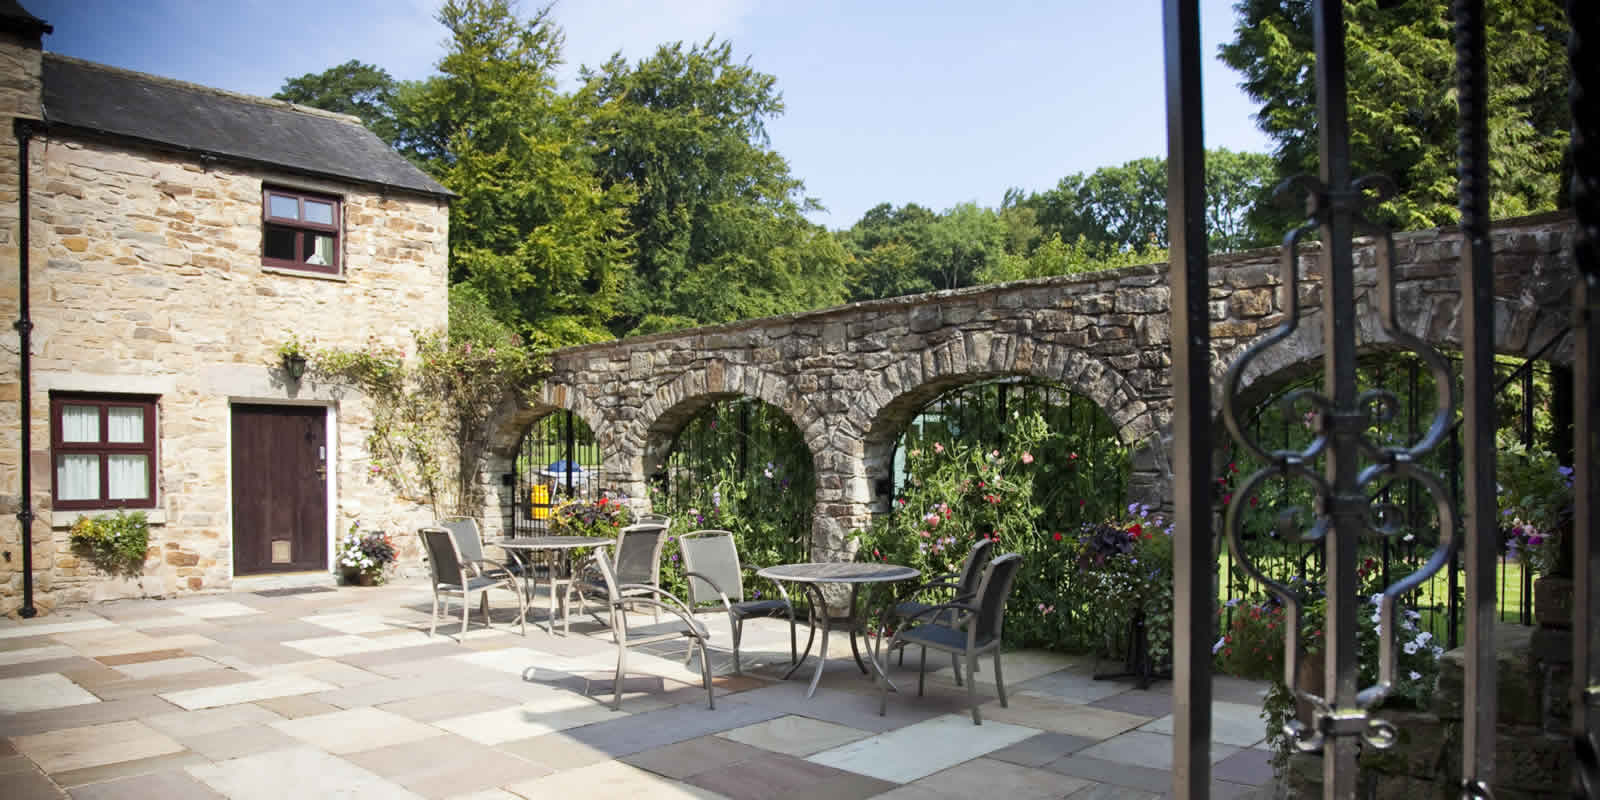 Luxury Holiday Cottages in the ribble valley Clitheroe